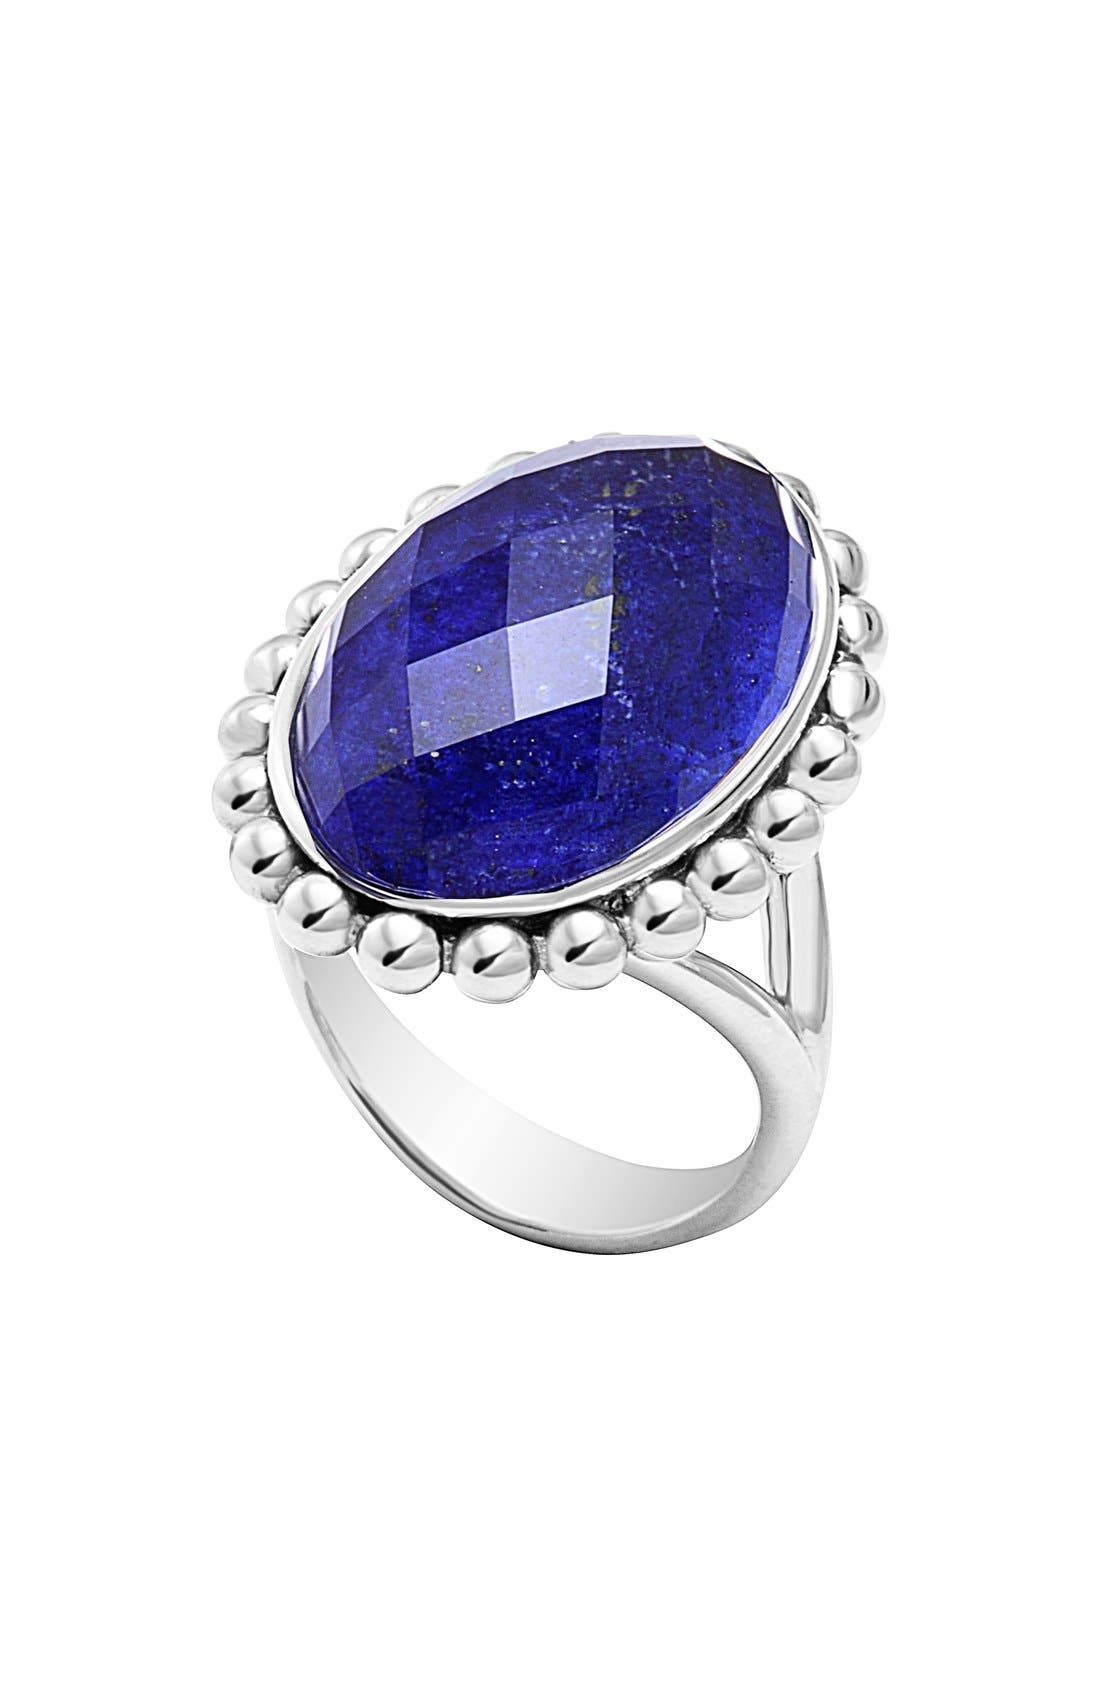 Alternate Image 1 Selected - LAGOS 'Maya' Oval Doublet Ring